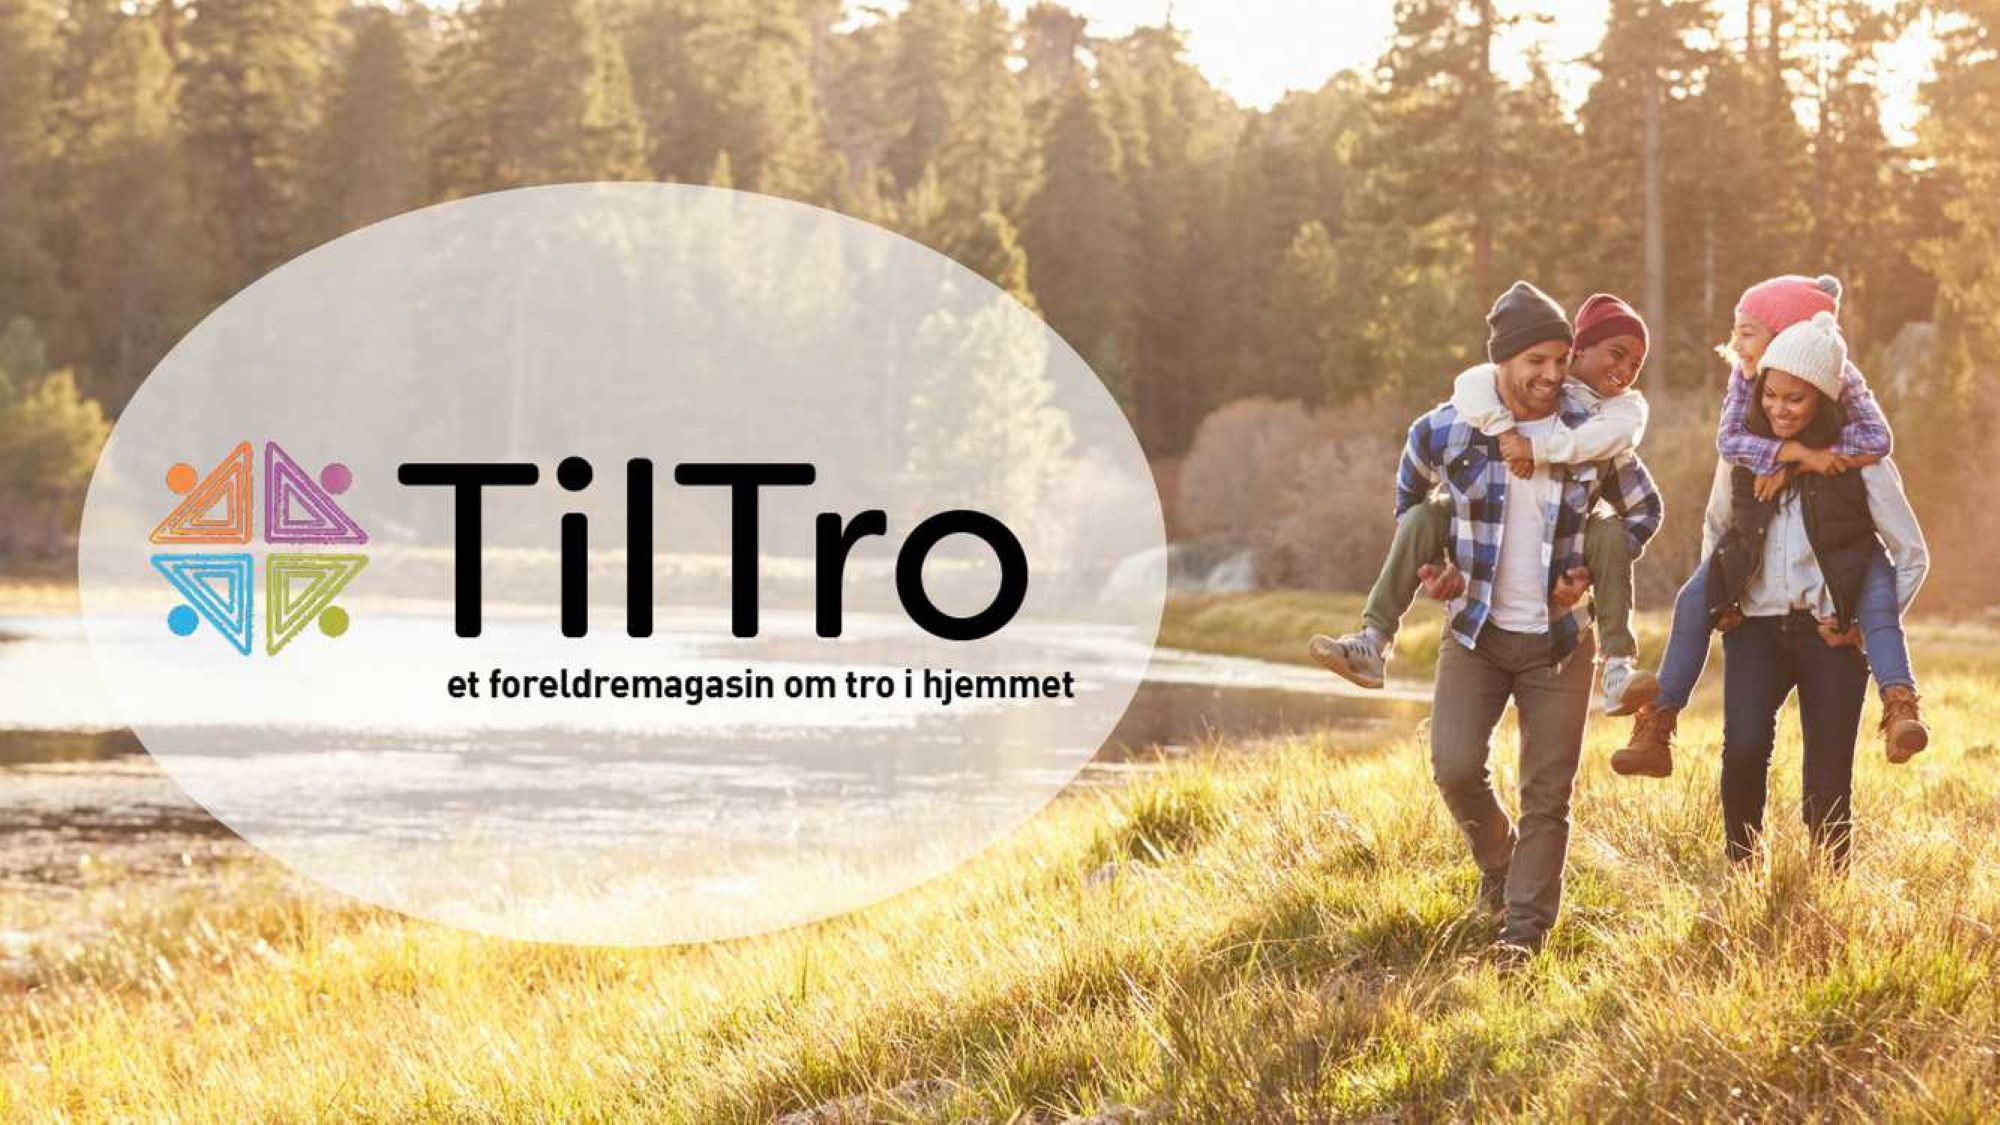 Bilde for tiltro.no